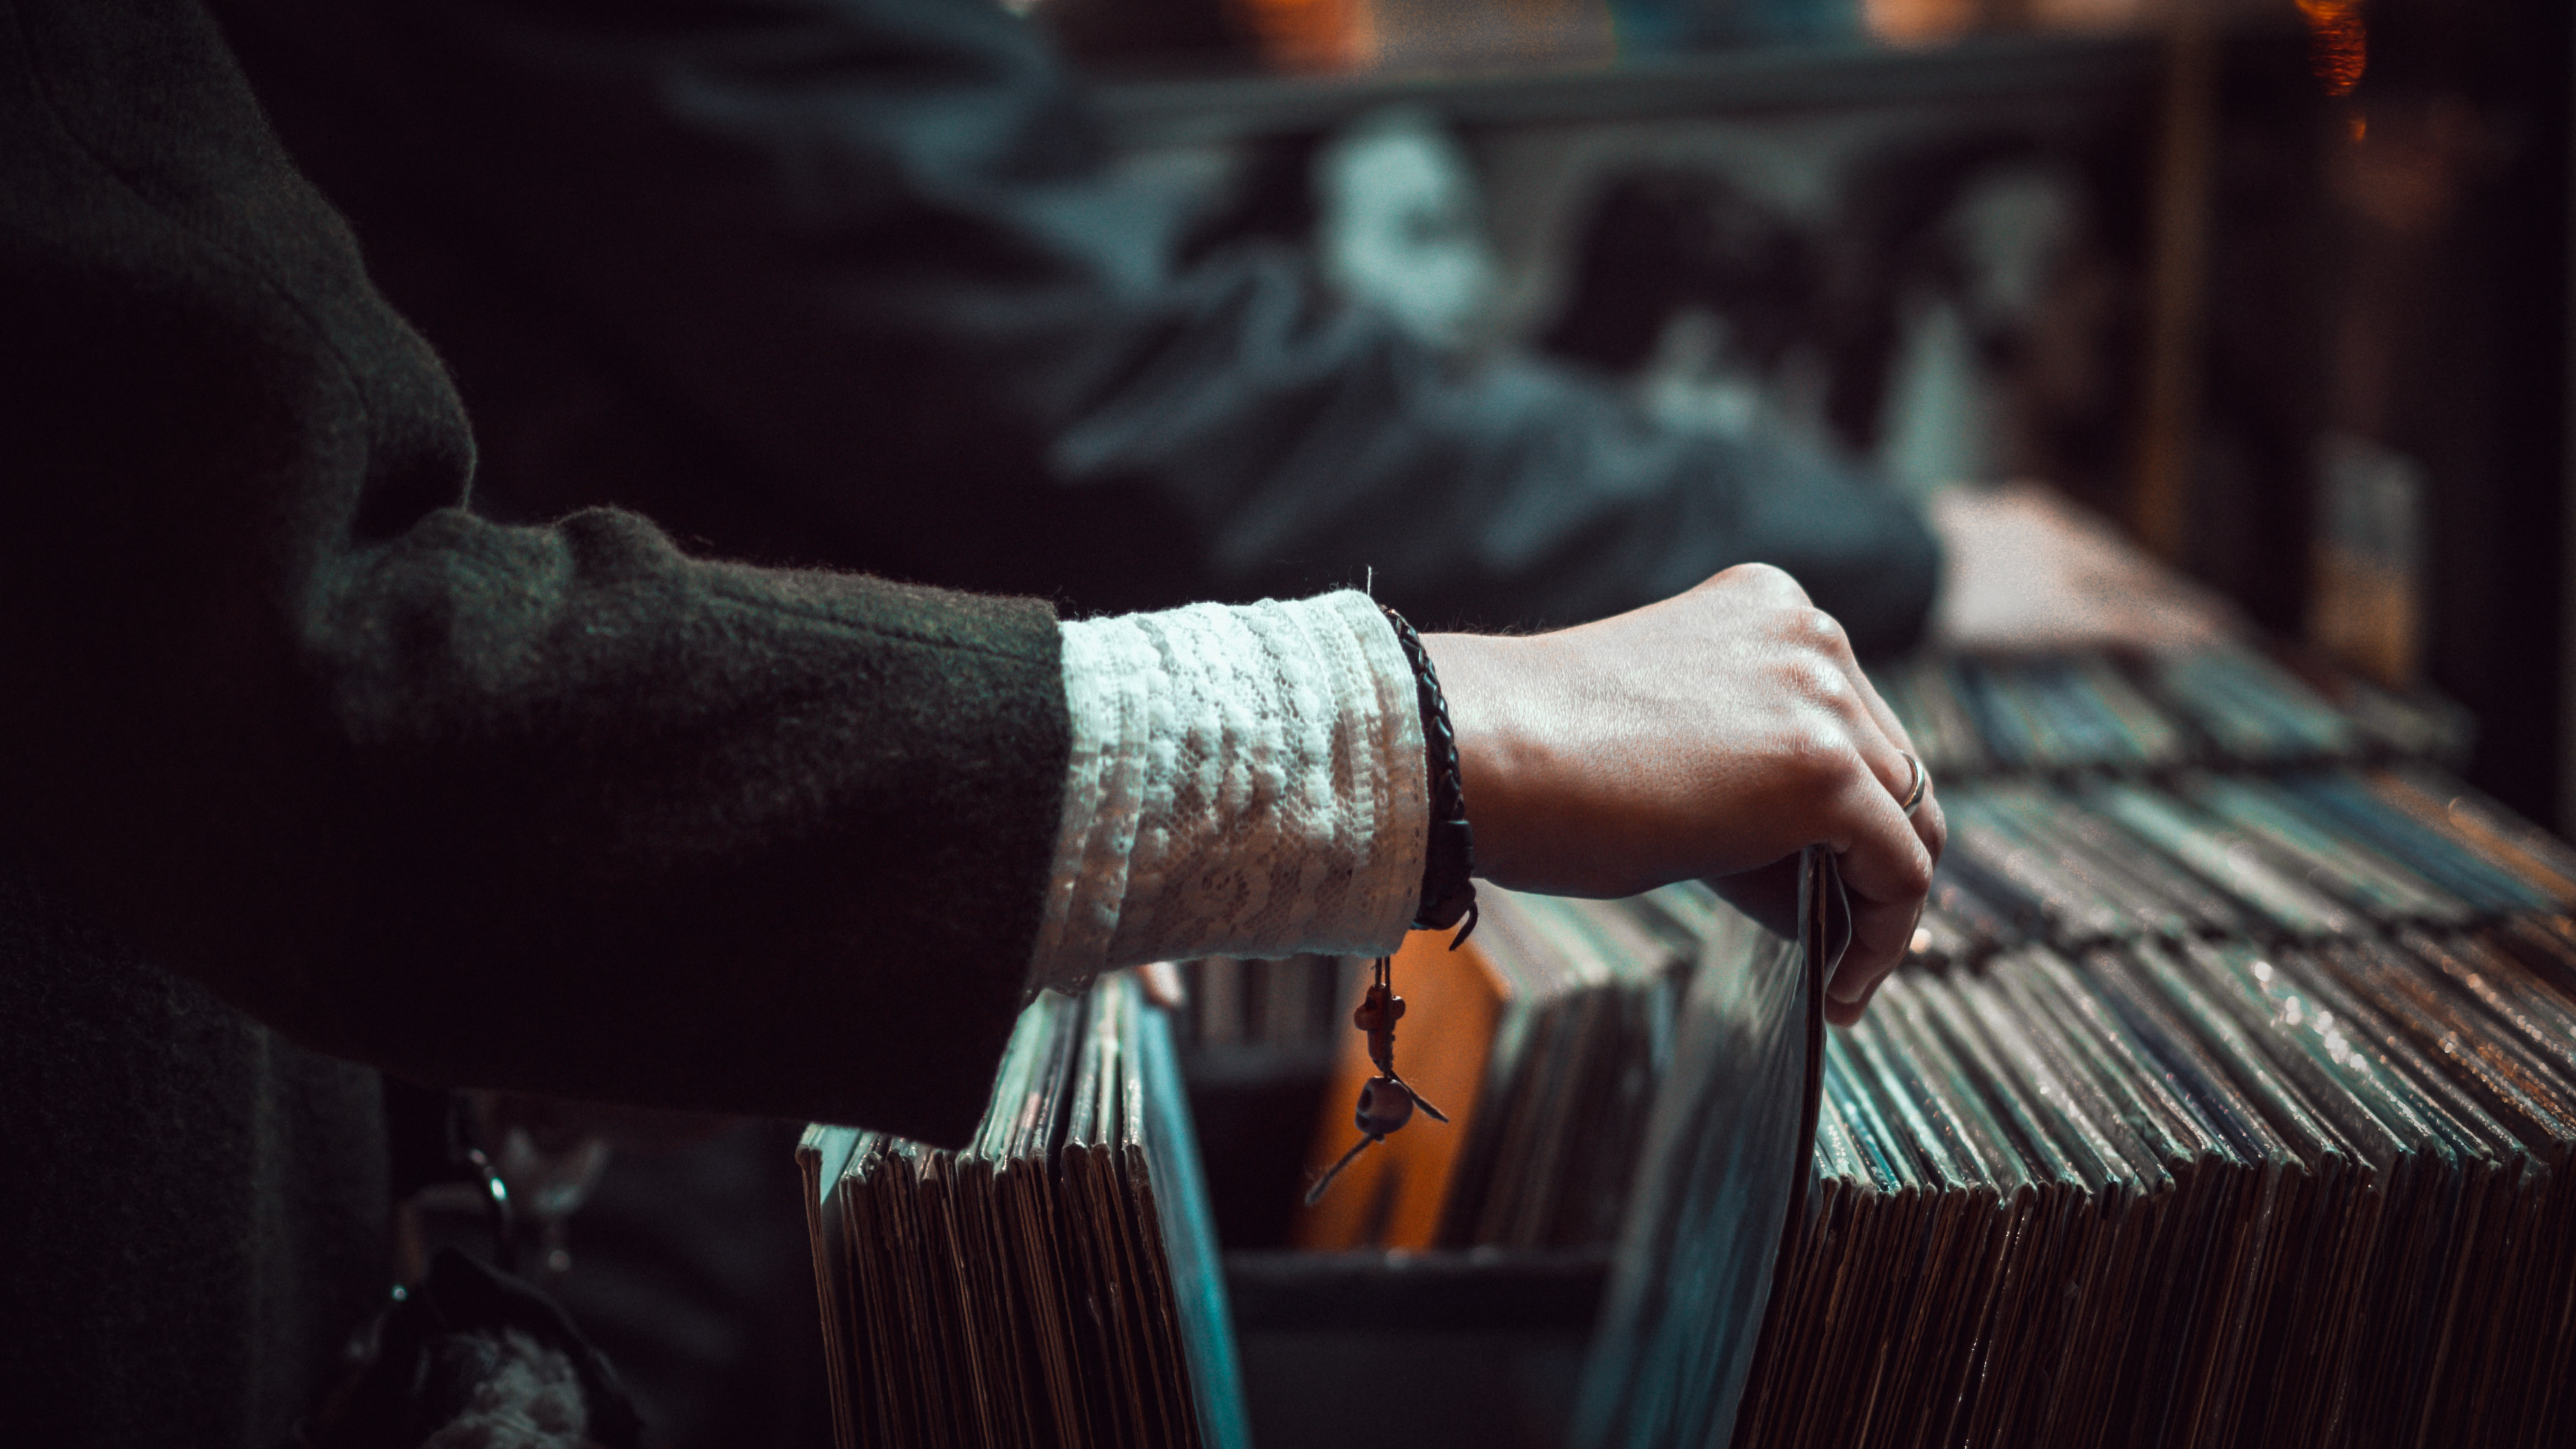 A close-up of the hand of a person browsing vinyl records at a store